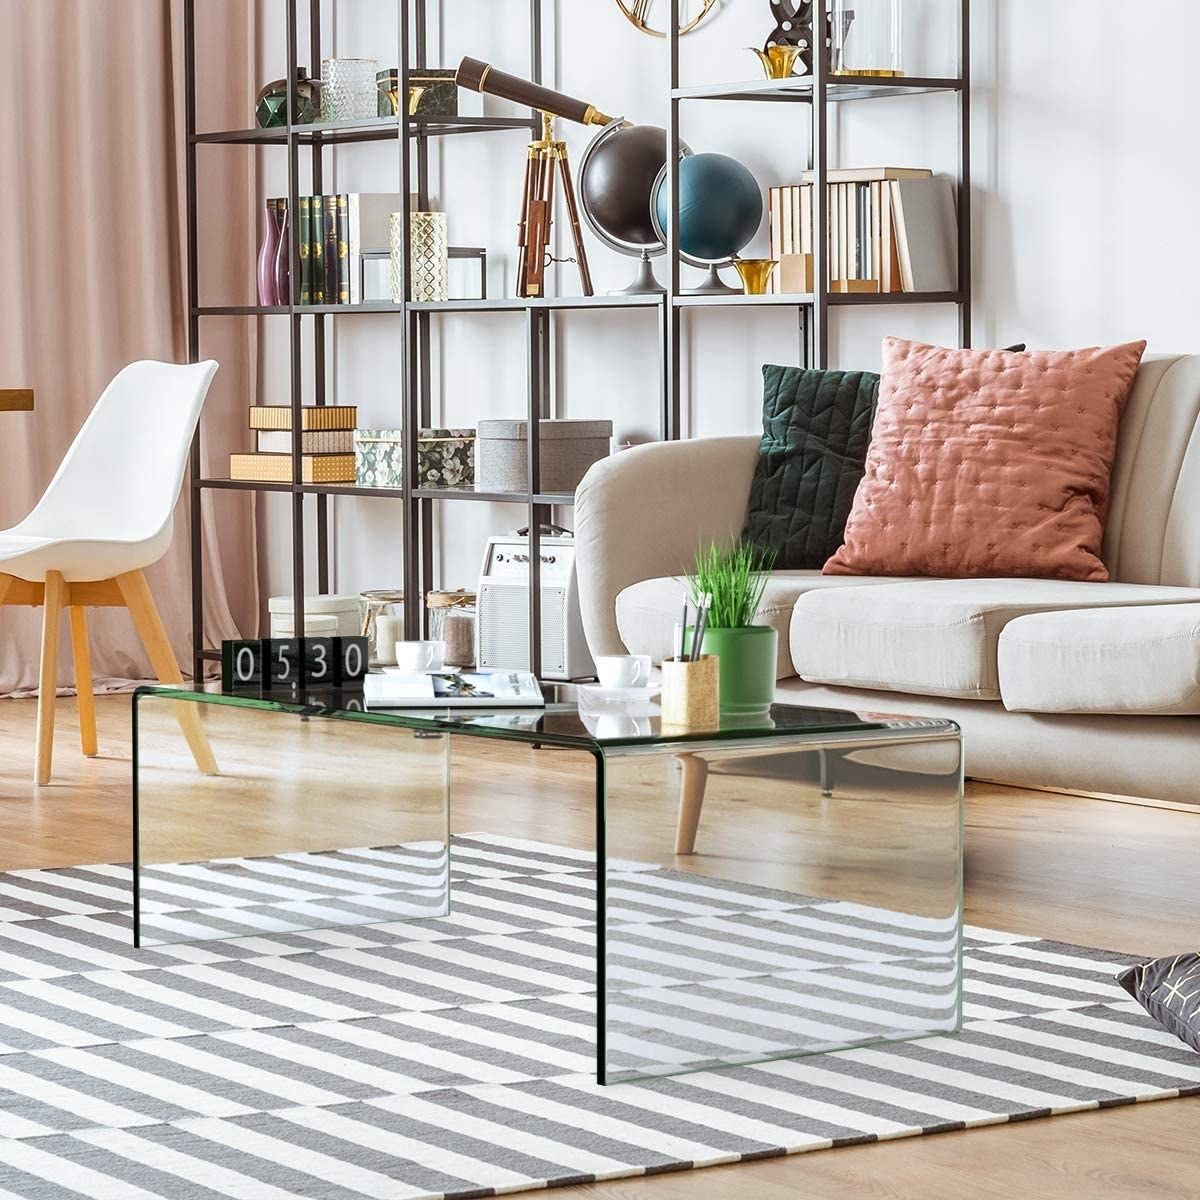 The coffee table with decor accessories on it in a living room